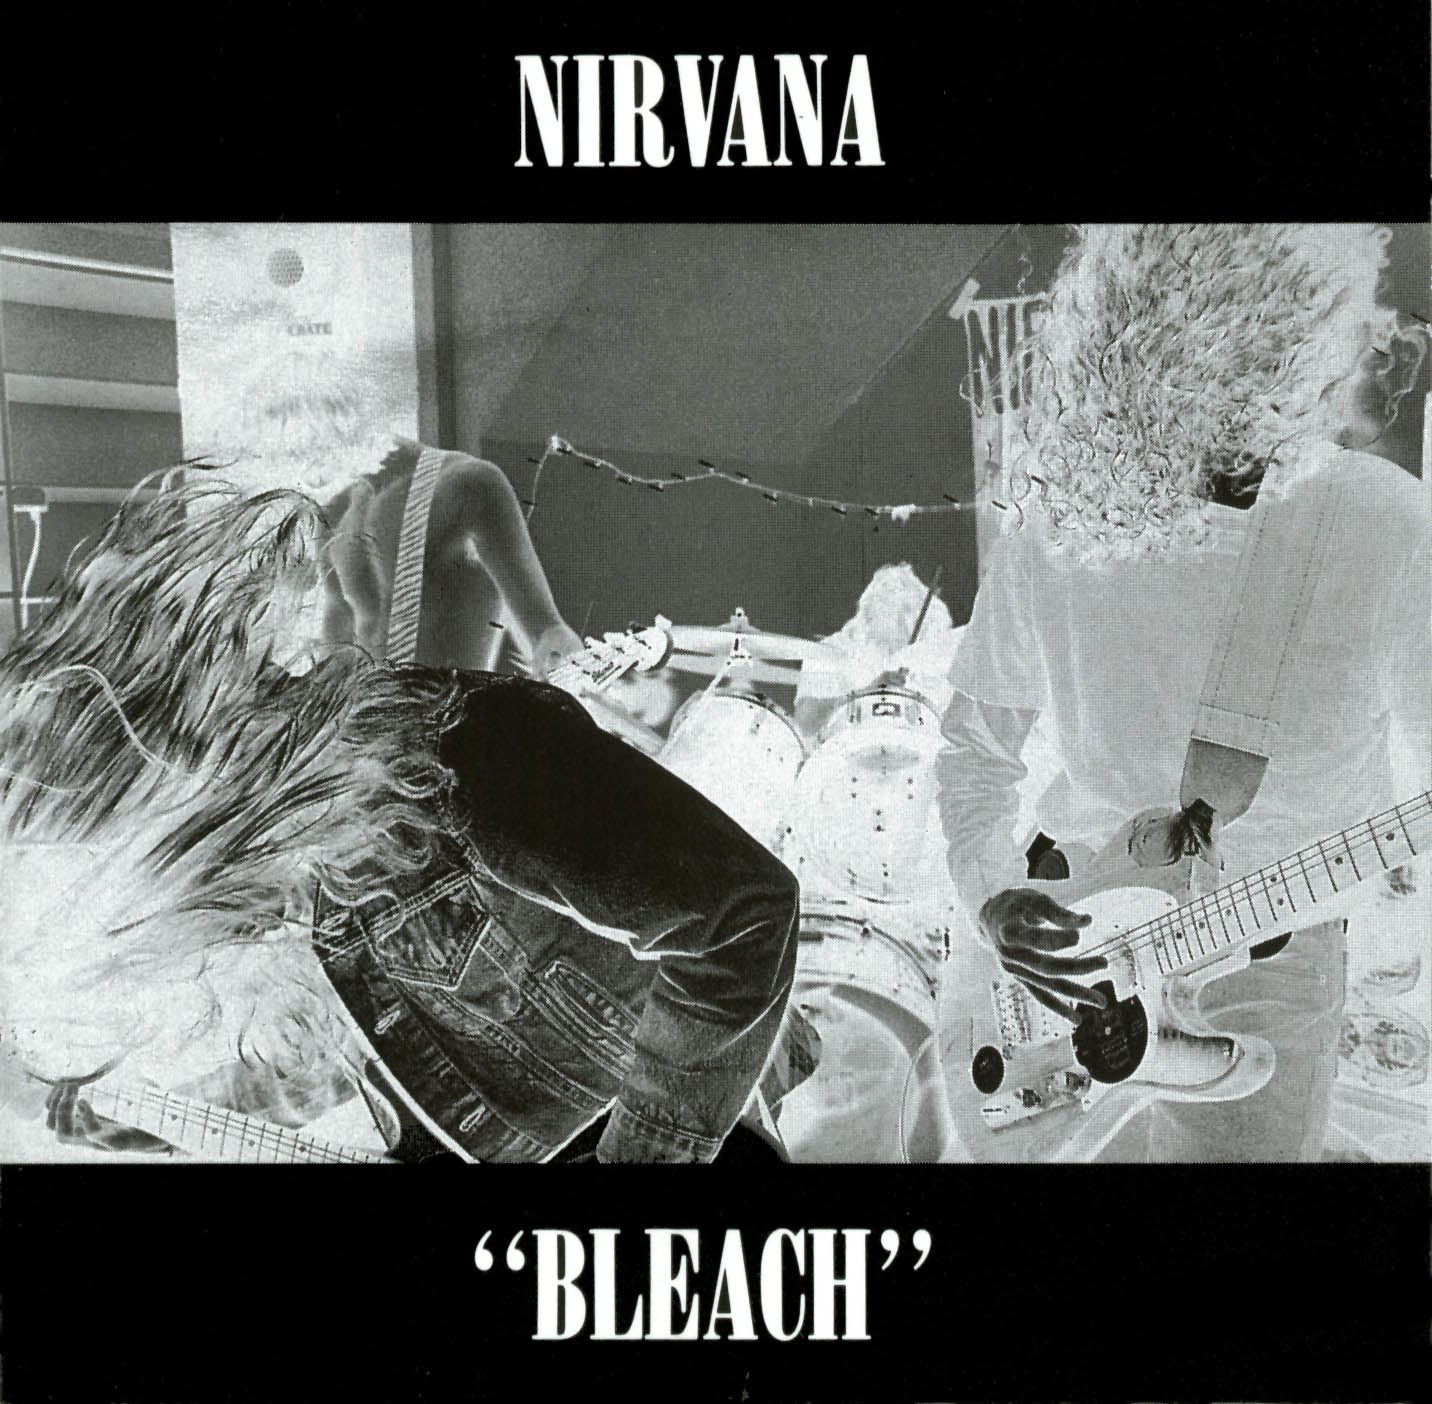 Nirvana's 'Bleach' receiving 20th anniversary reissue on Sub Pop, with bonus live concert